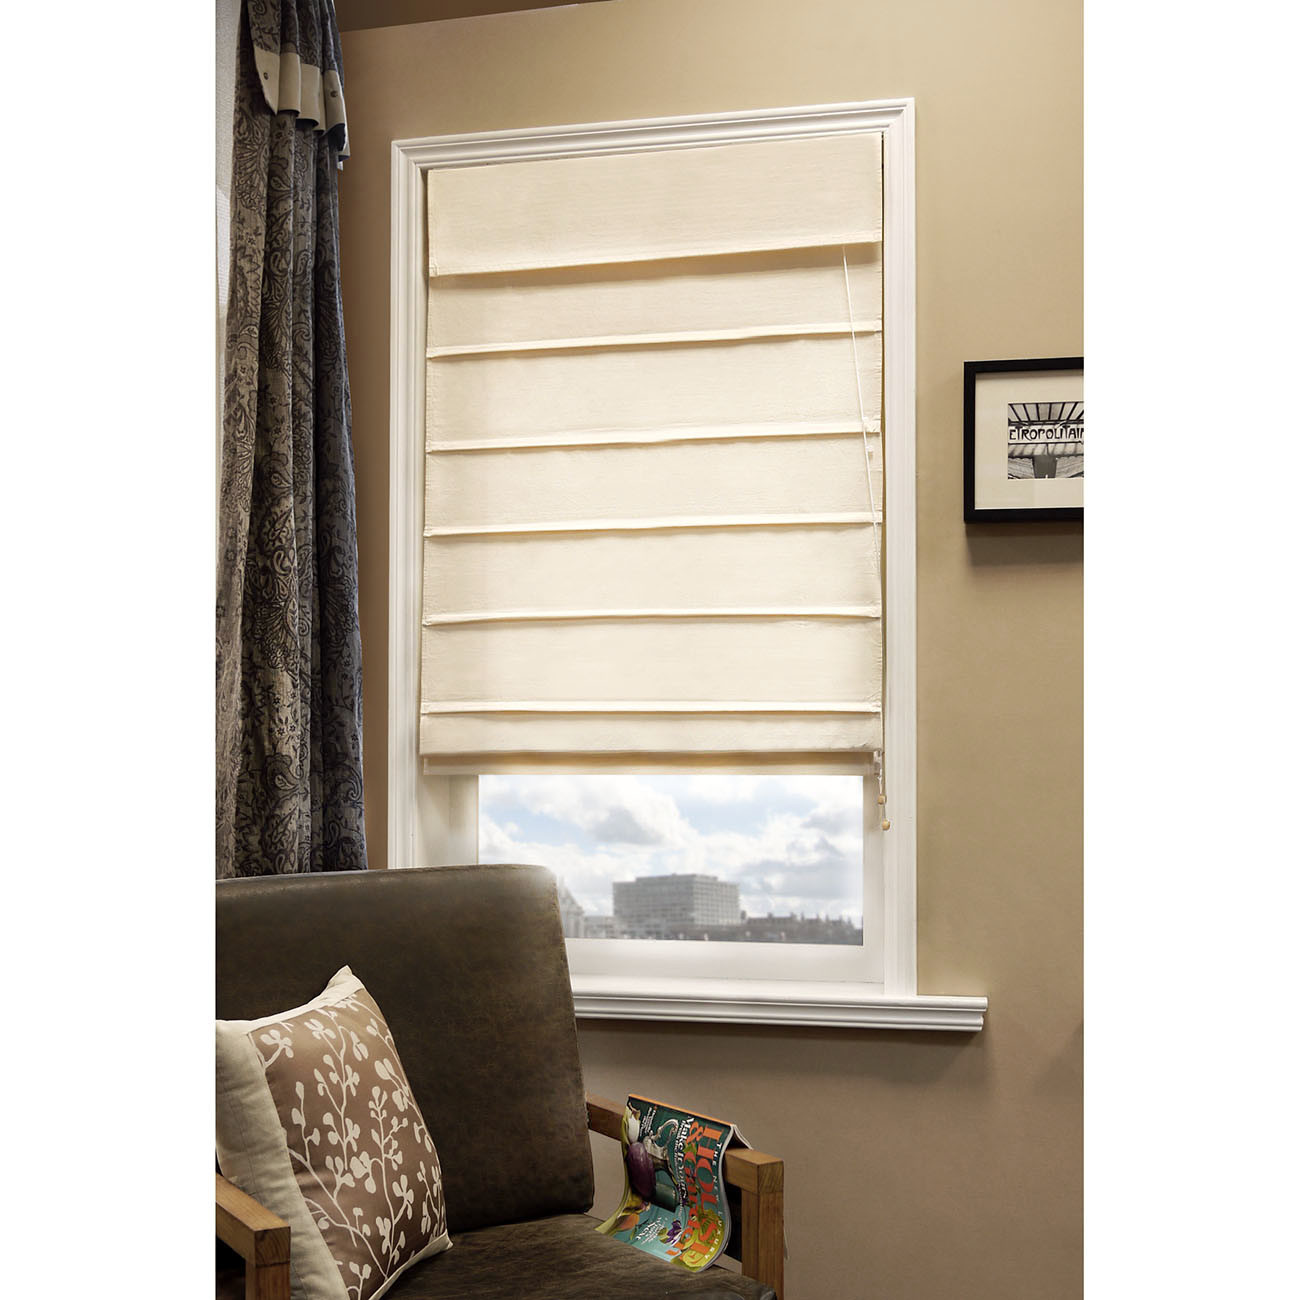 Excellent Menards Window Blinds for Best Window Blind Ideas: Menards Quincy Il | Menards Window Blinds | Menards Vertical Window Blinds